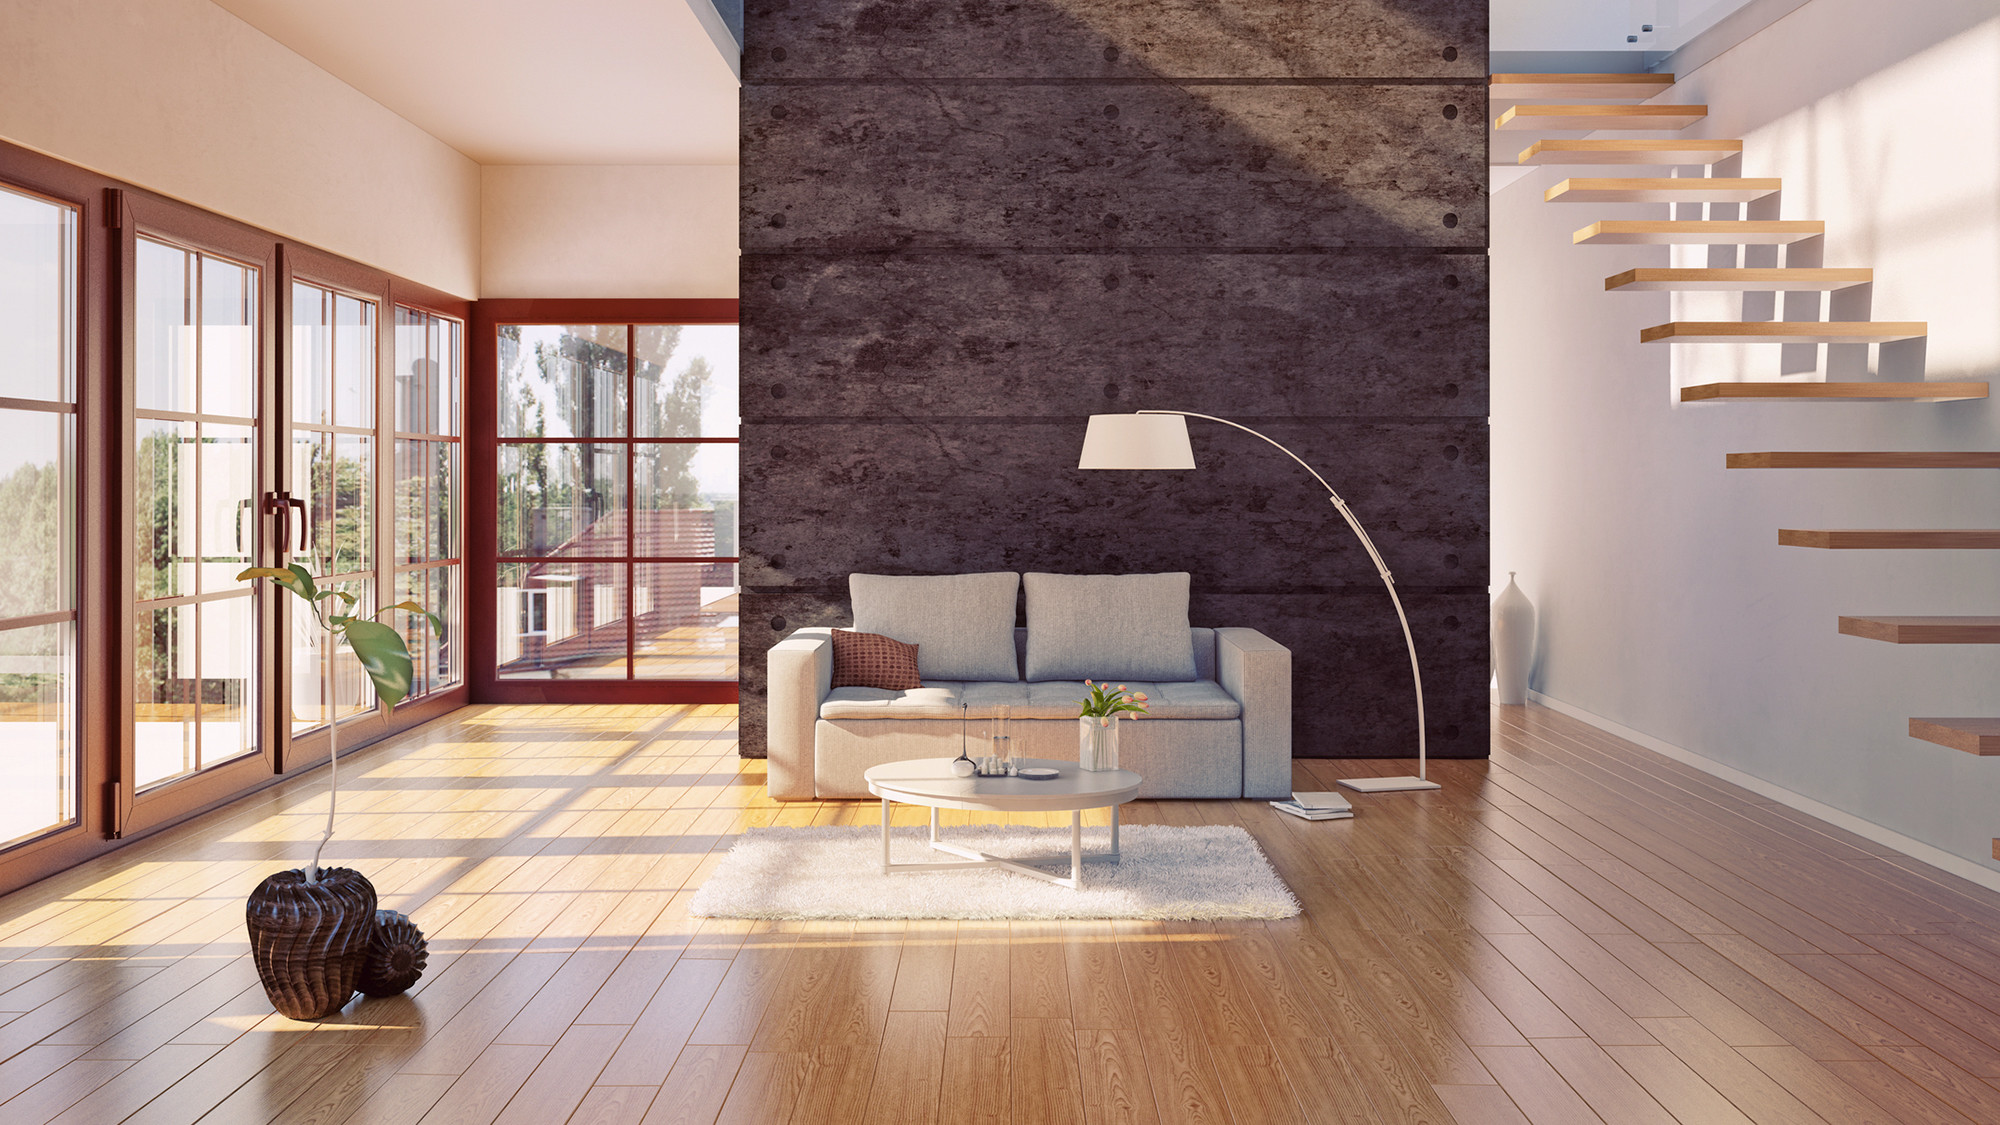 how to install hardwood floors on second floor of do hardwood floors provide the best return on investment realtor coma with regard to hardwood floors investment